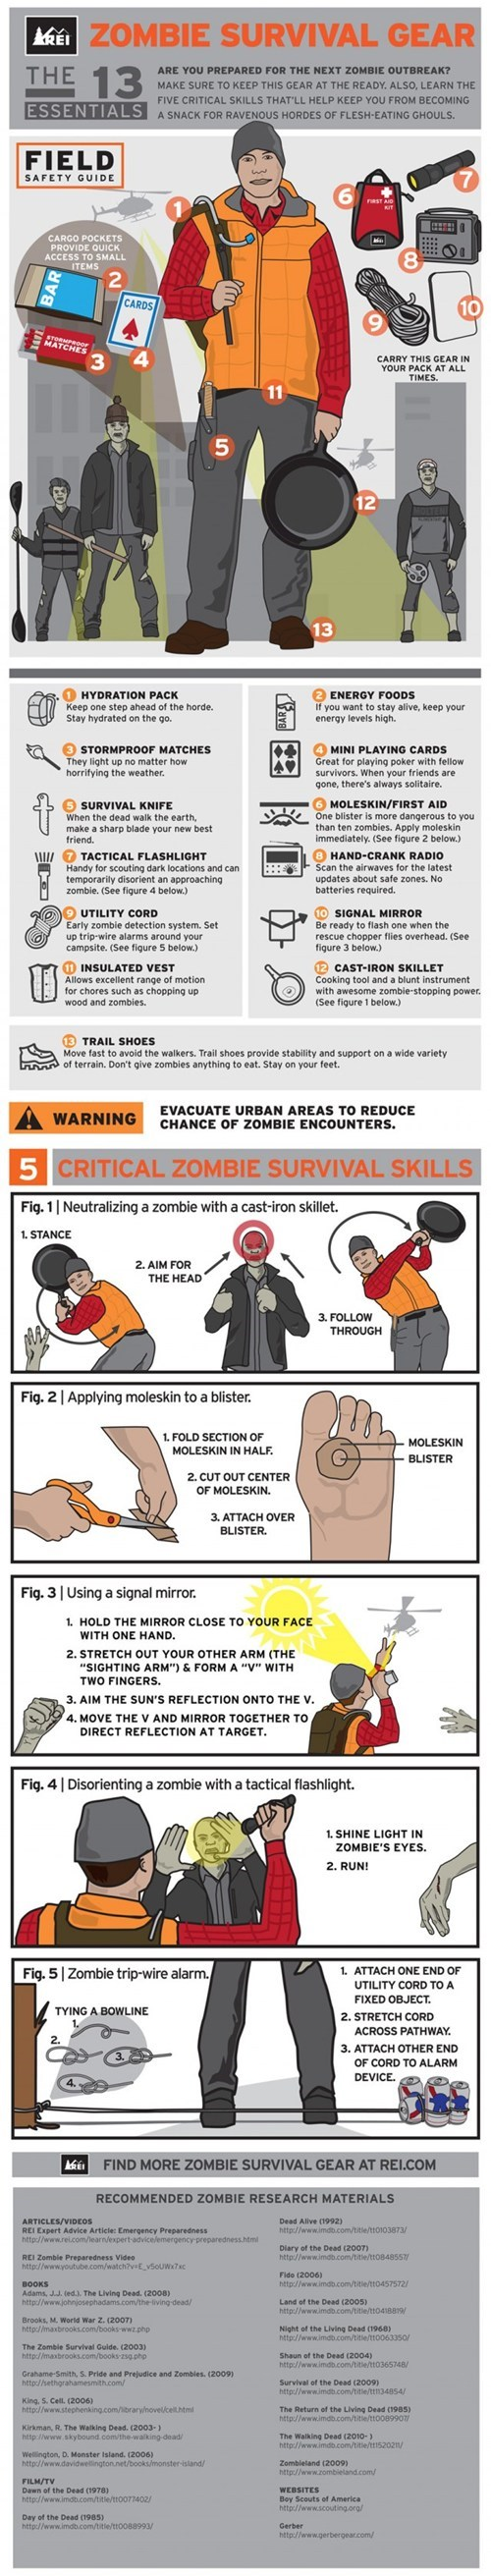 zombie survival guide Rei infographic - 6666128896